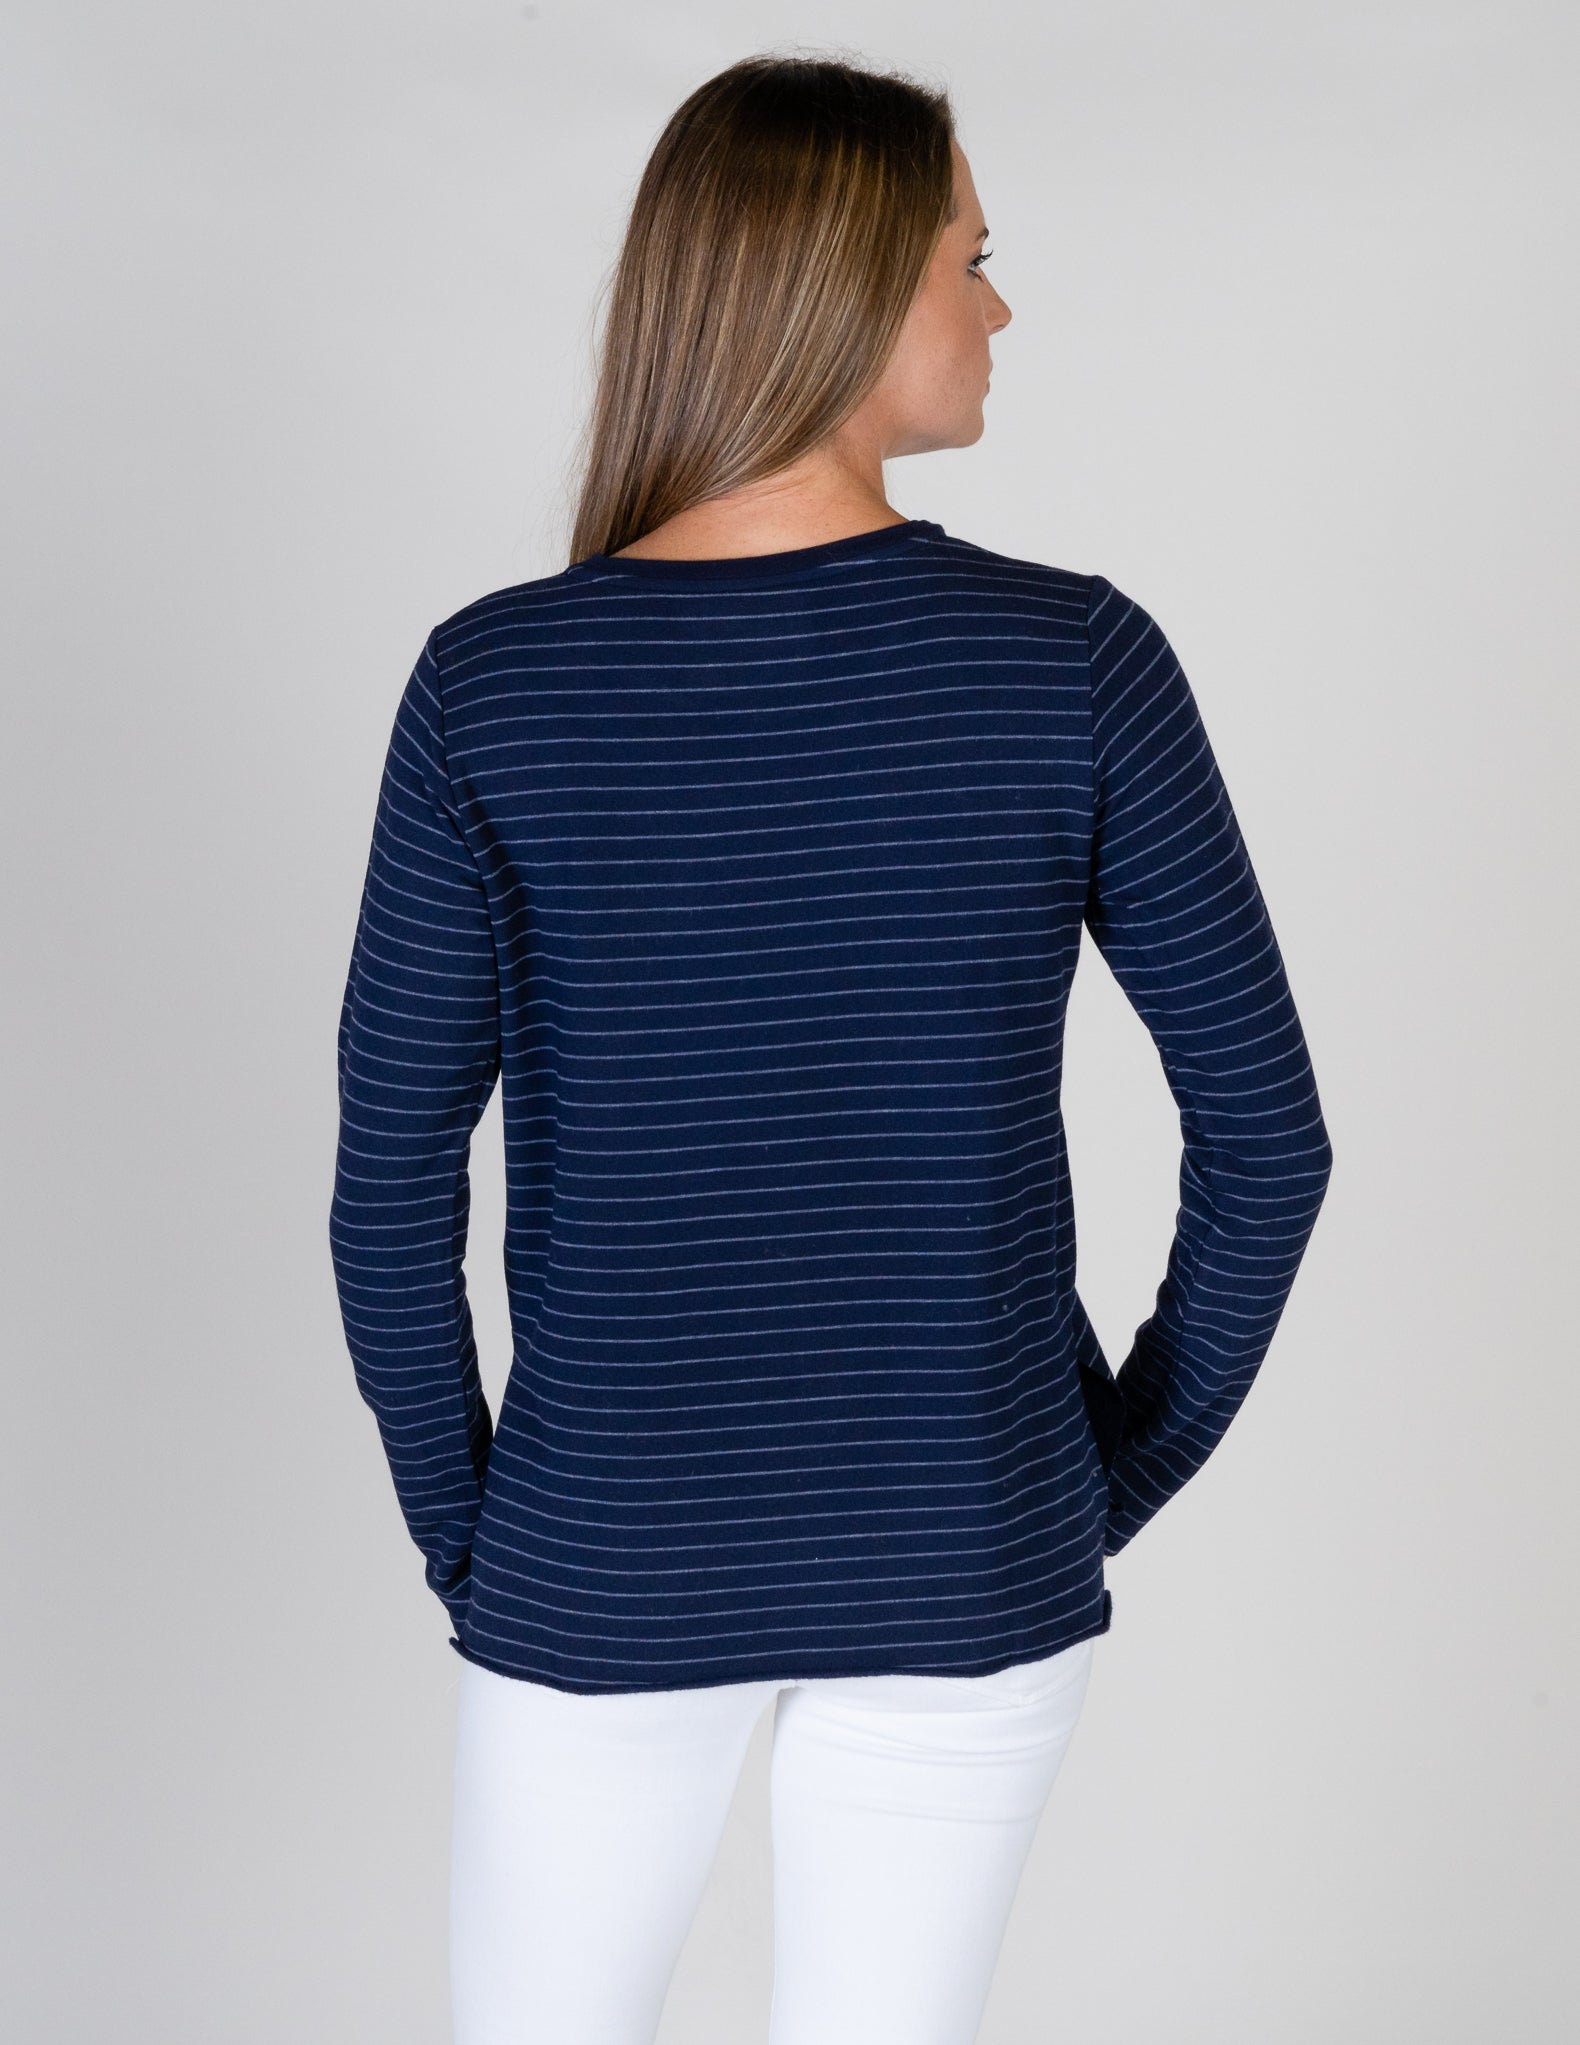 Majestic Long Sleeve French Terry Striped Crewneck in Marine/Denim